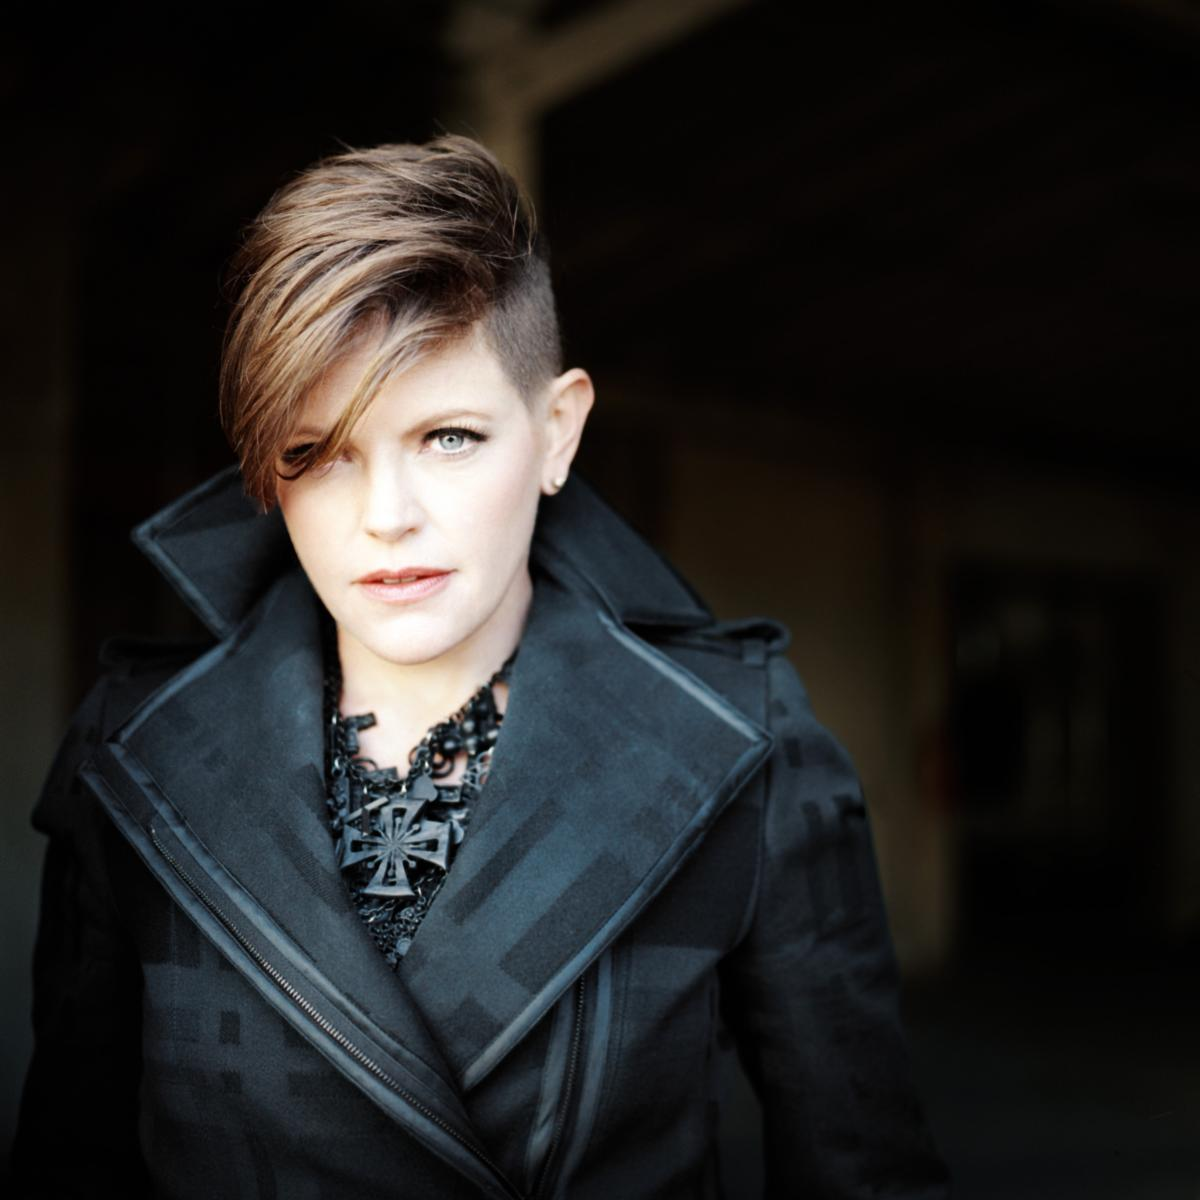 Natalie Maines, former singer for the Dixie Chicks, placed the group at the center of controversy in 2003, when she publicly criticized George W. Bush's decision to invade Iraq.